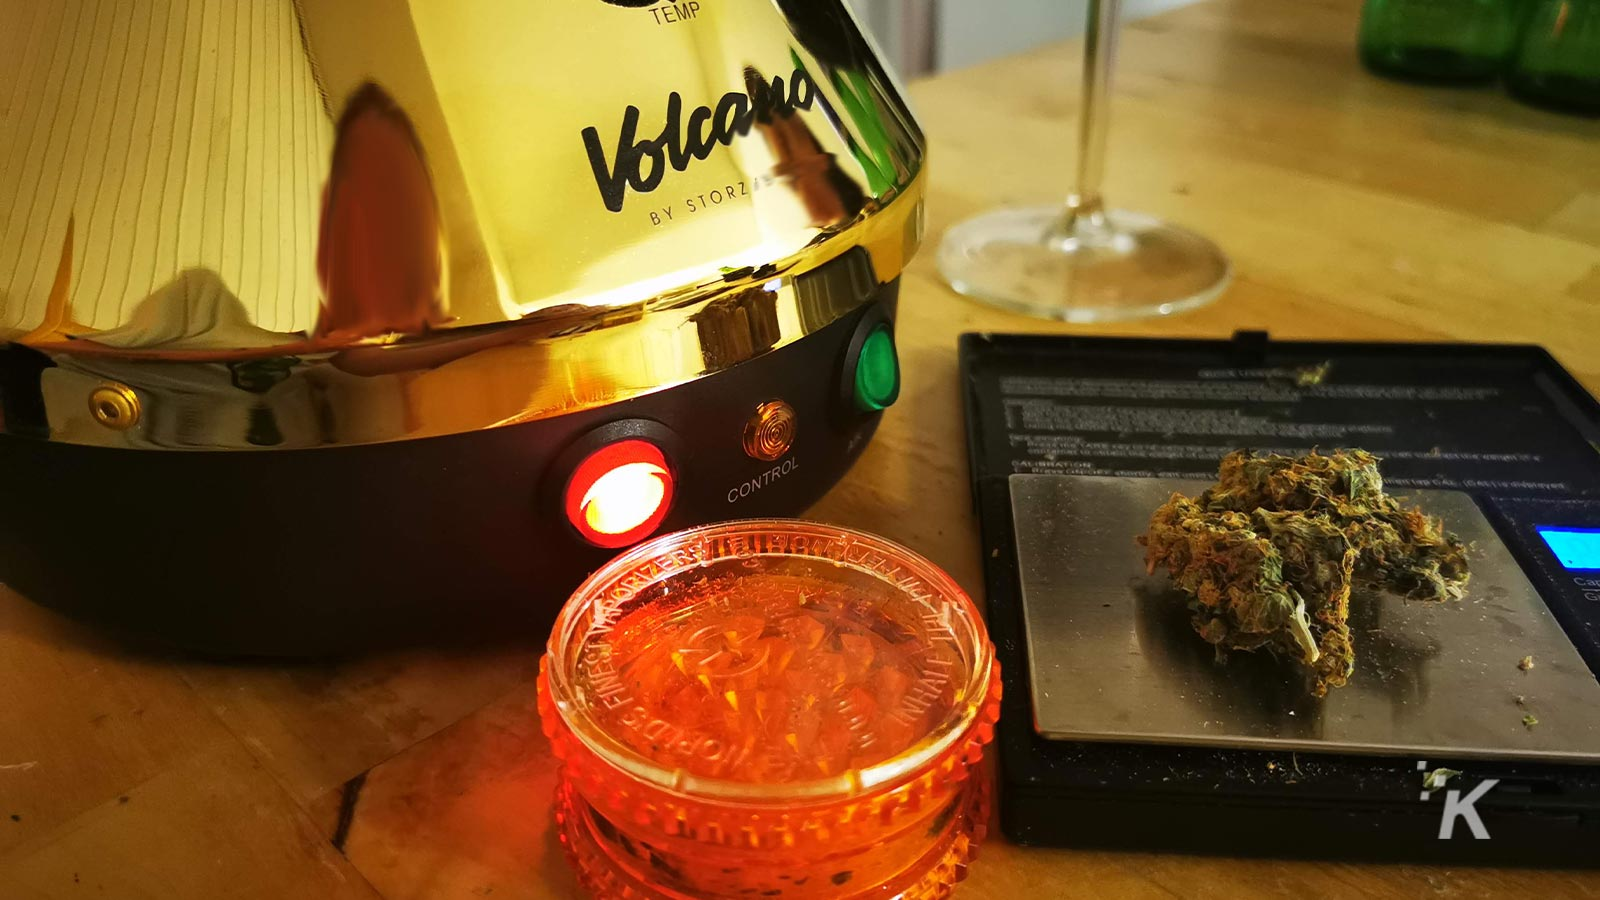 volcano with grinder and weed